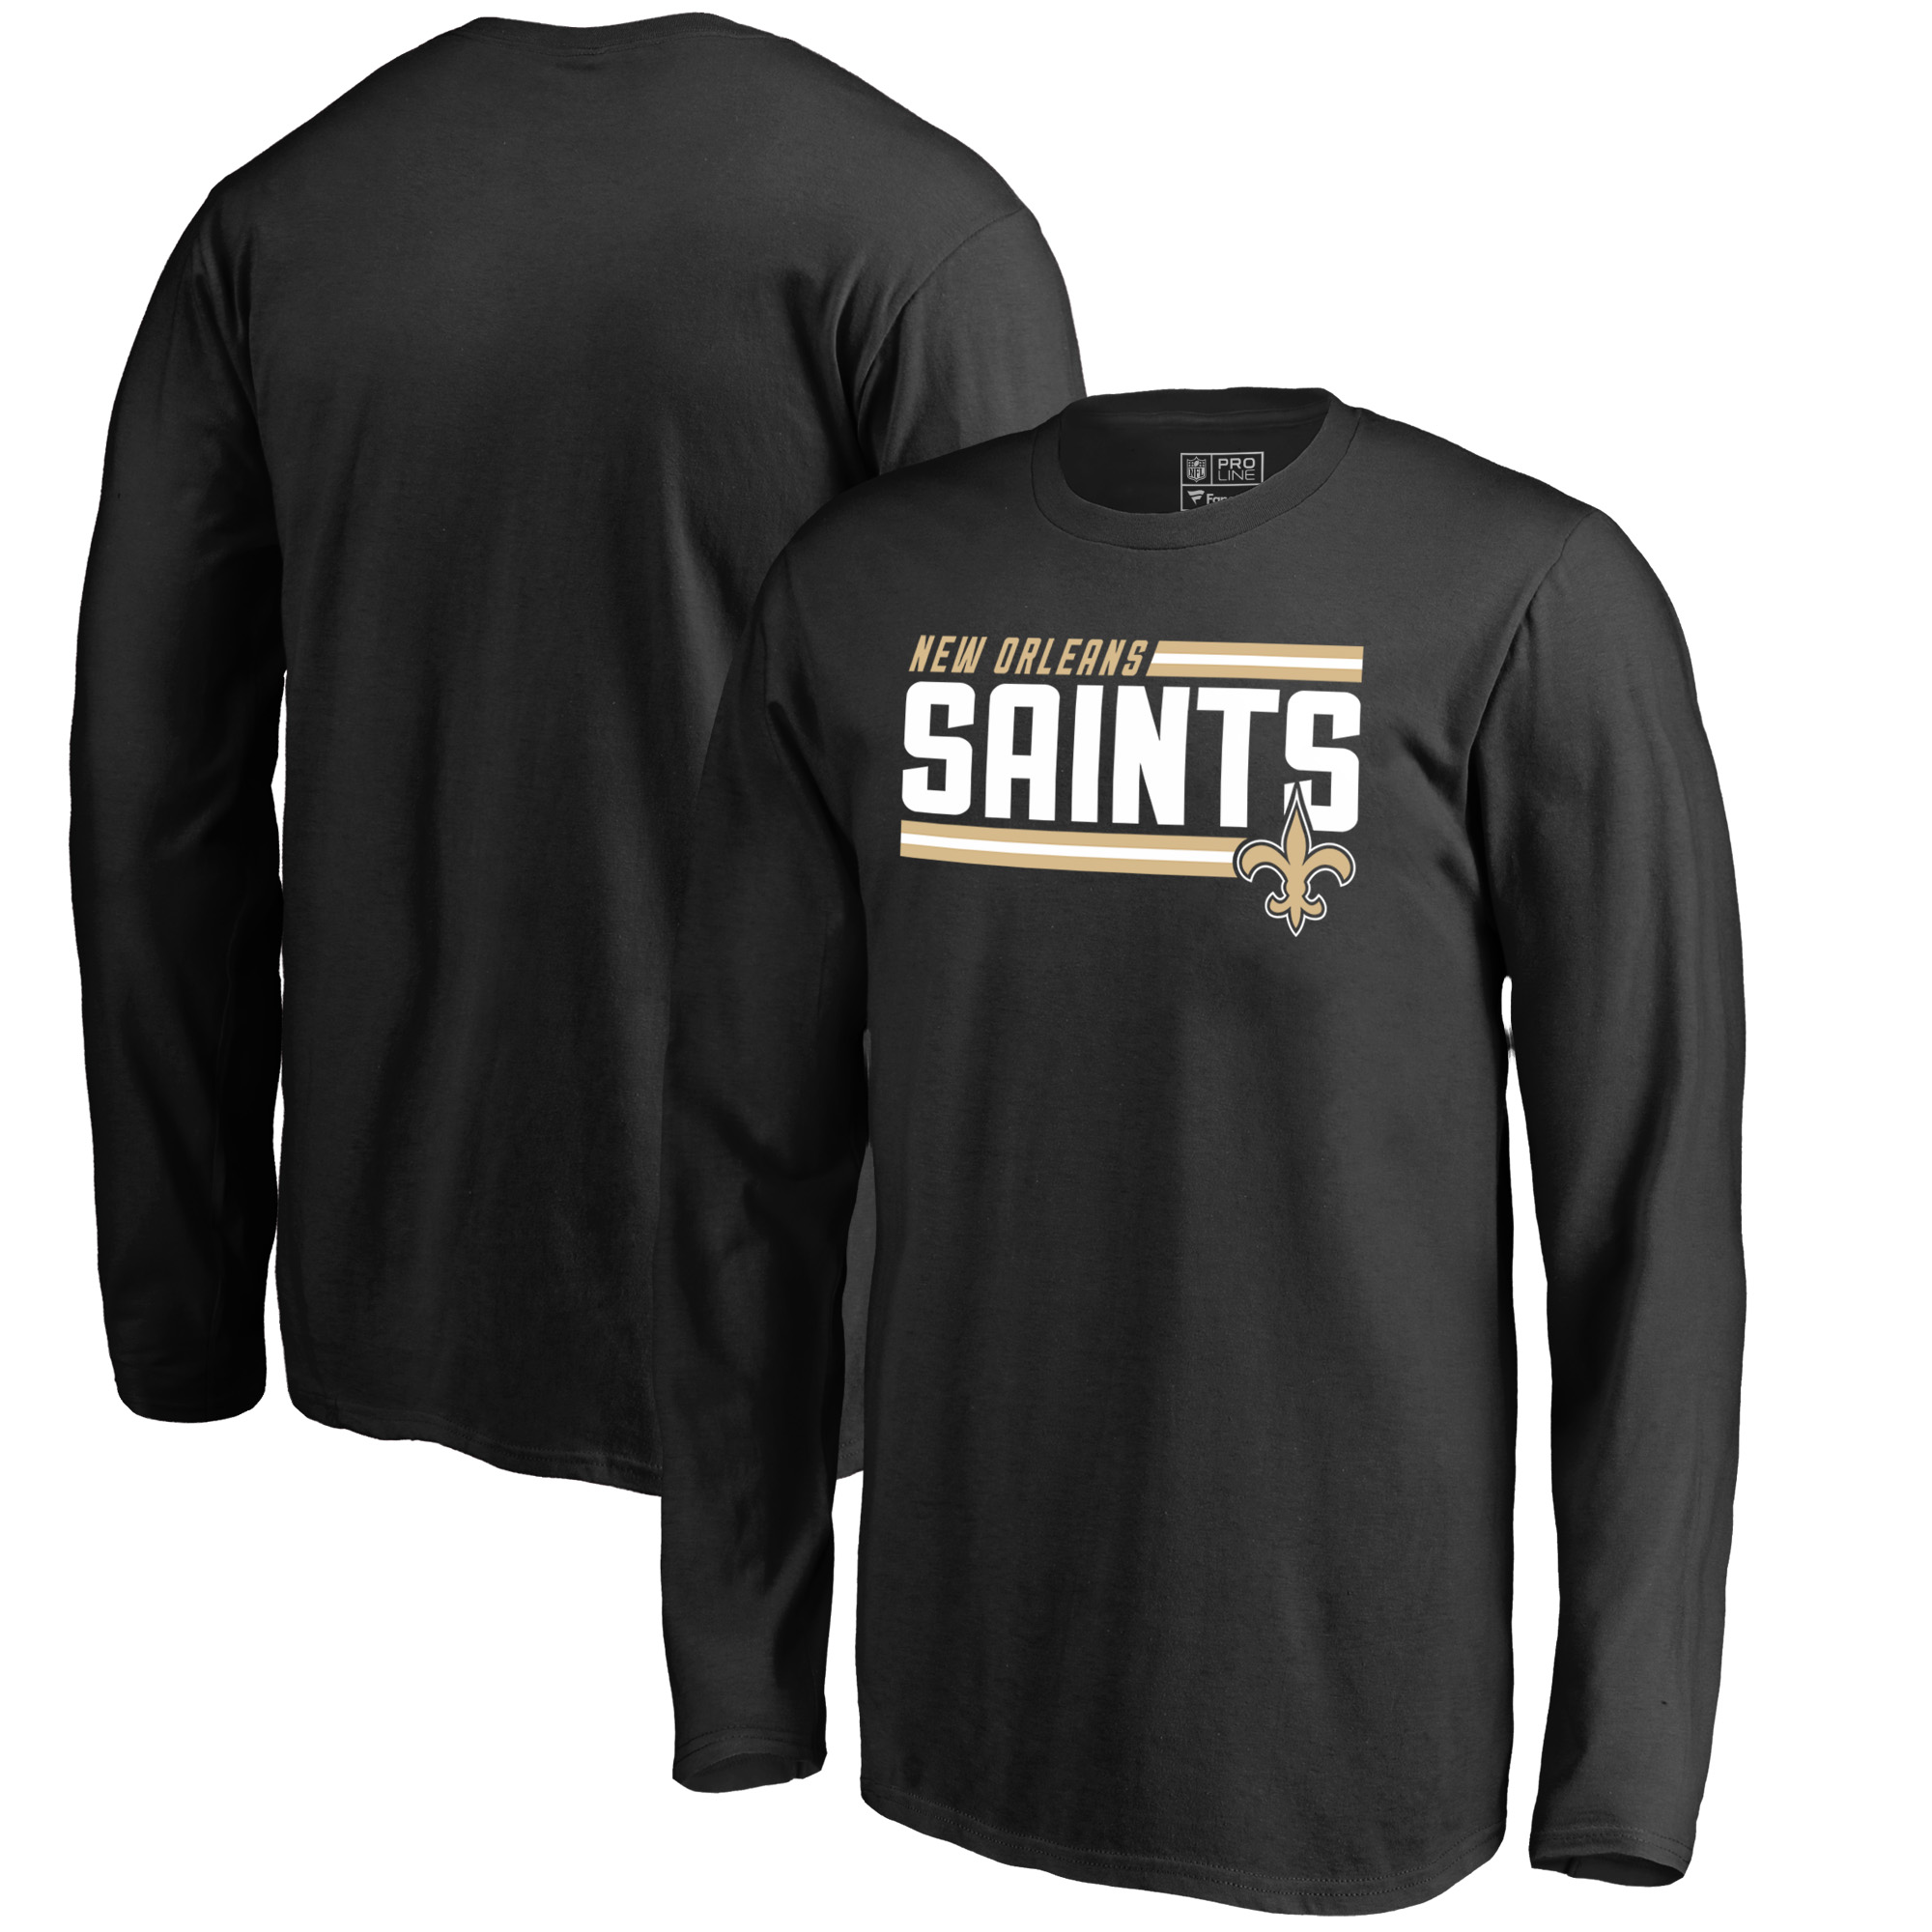 New Orleans Saints NFL Pro Line by Fanatics Branded Youth Iconic Collection On Side Stripe Long Sleeve T-Shirt - Black